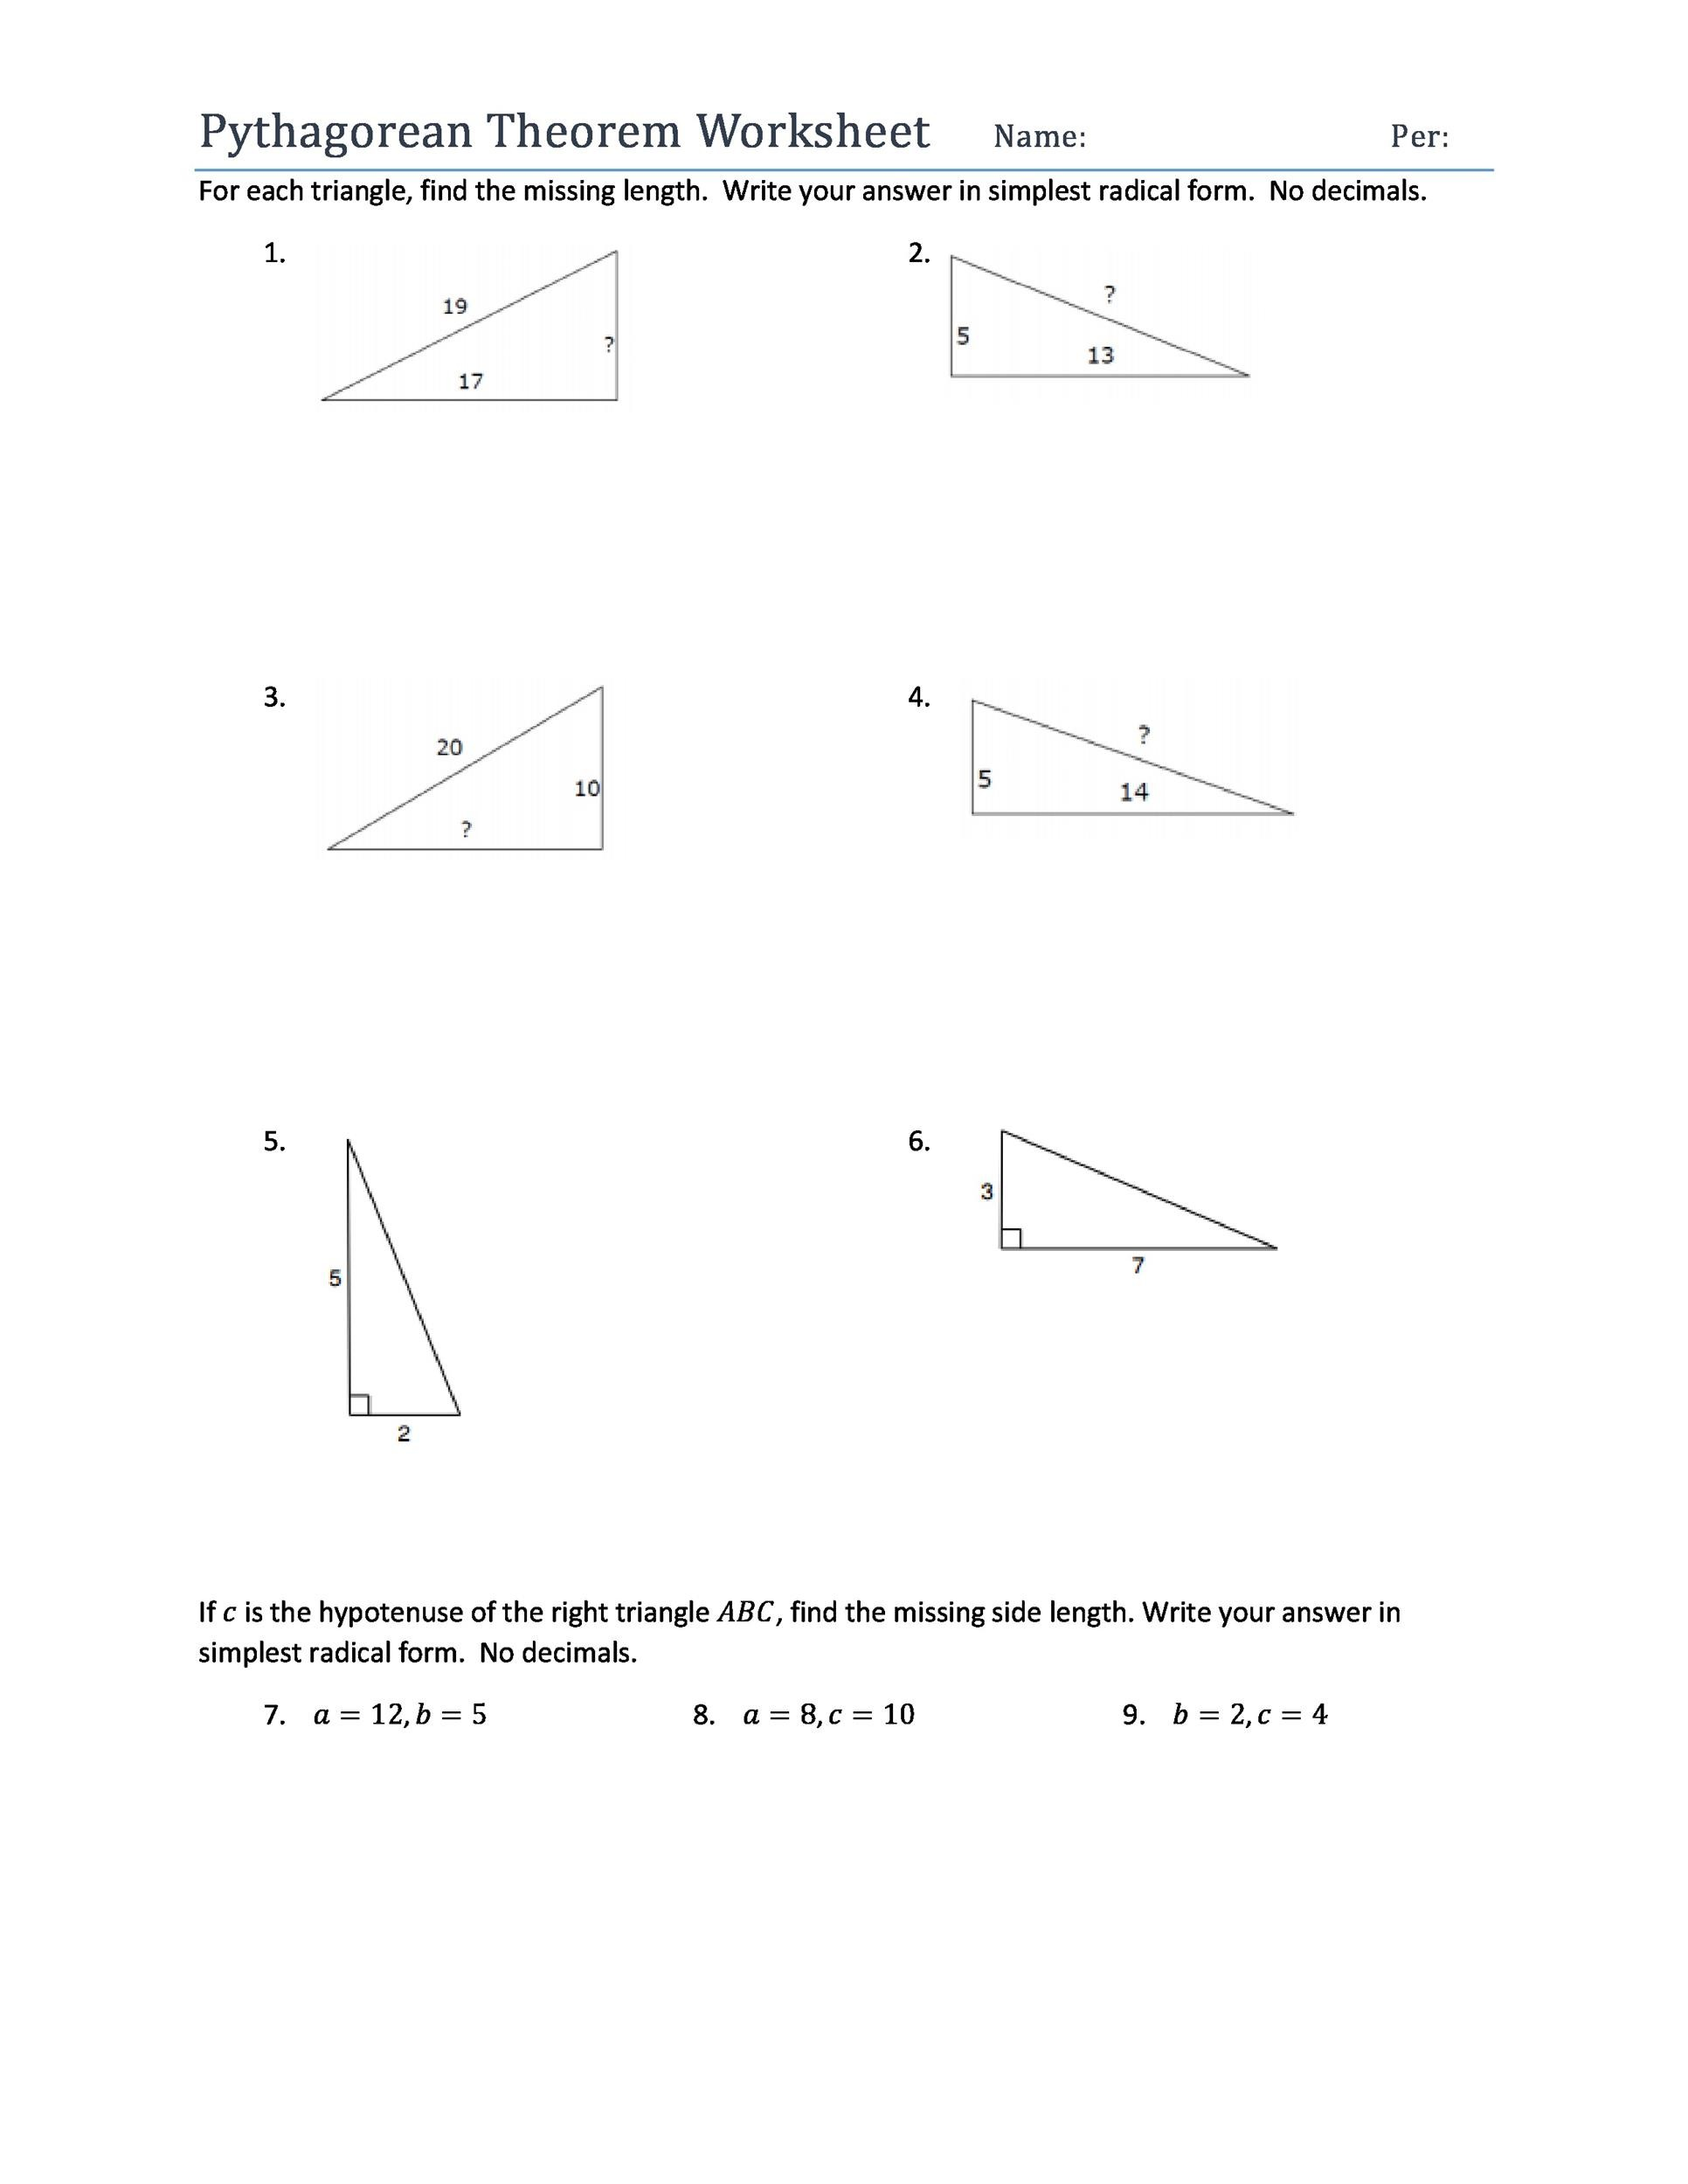 34 Pythagorean Theorem Worksheet With Answers